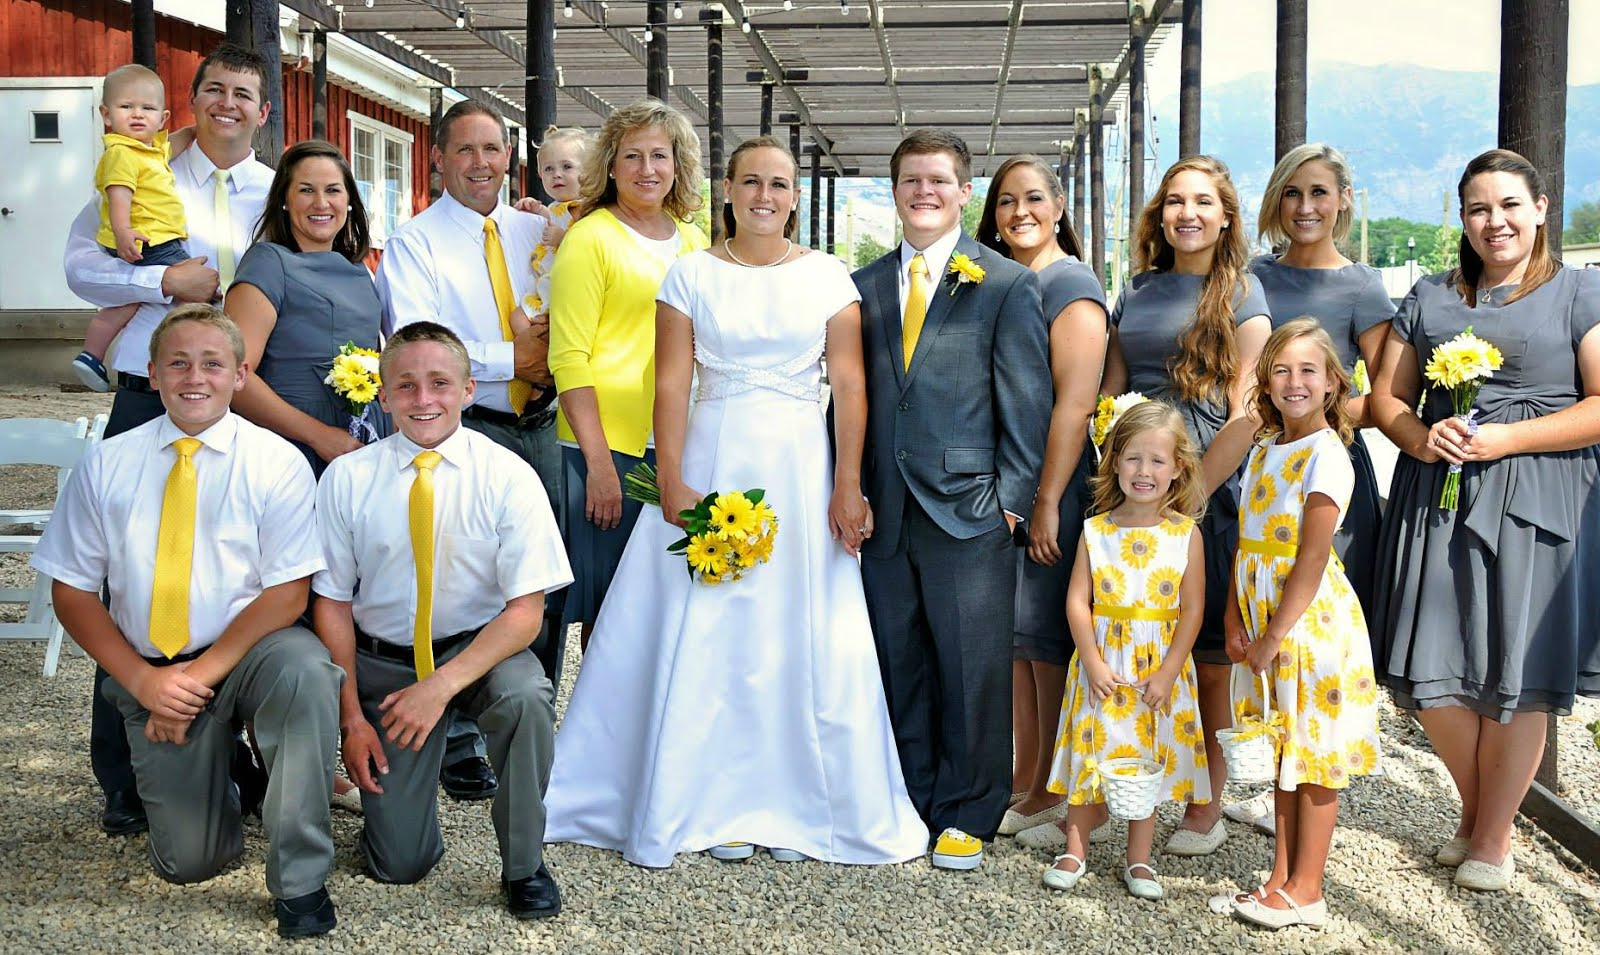 Brenden and Sierra's Wedding